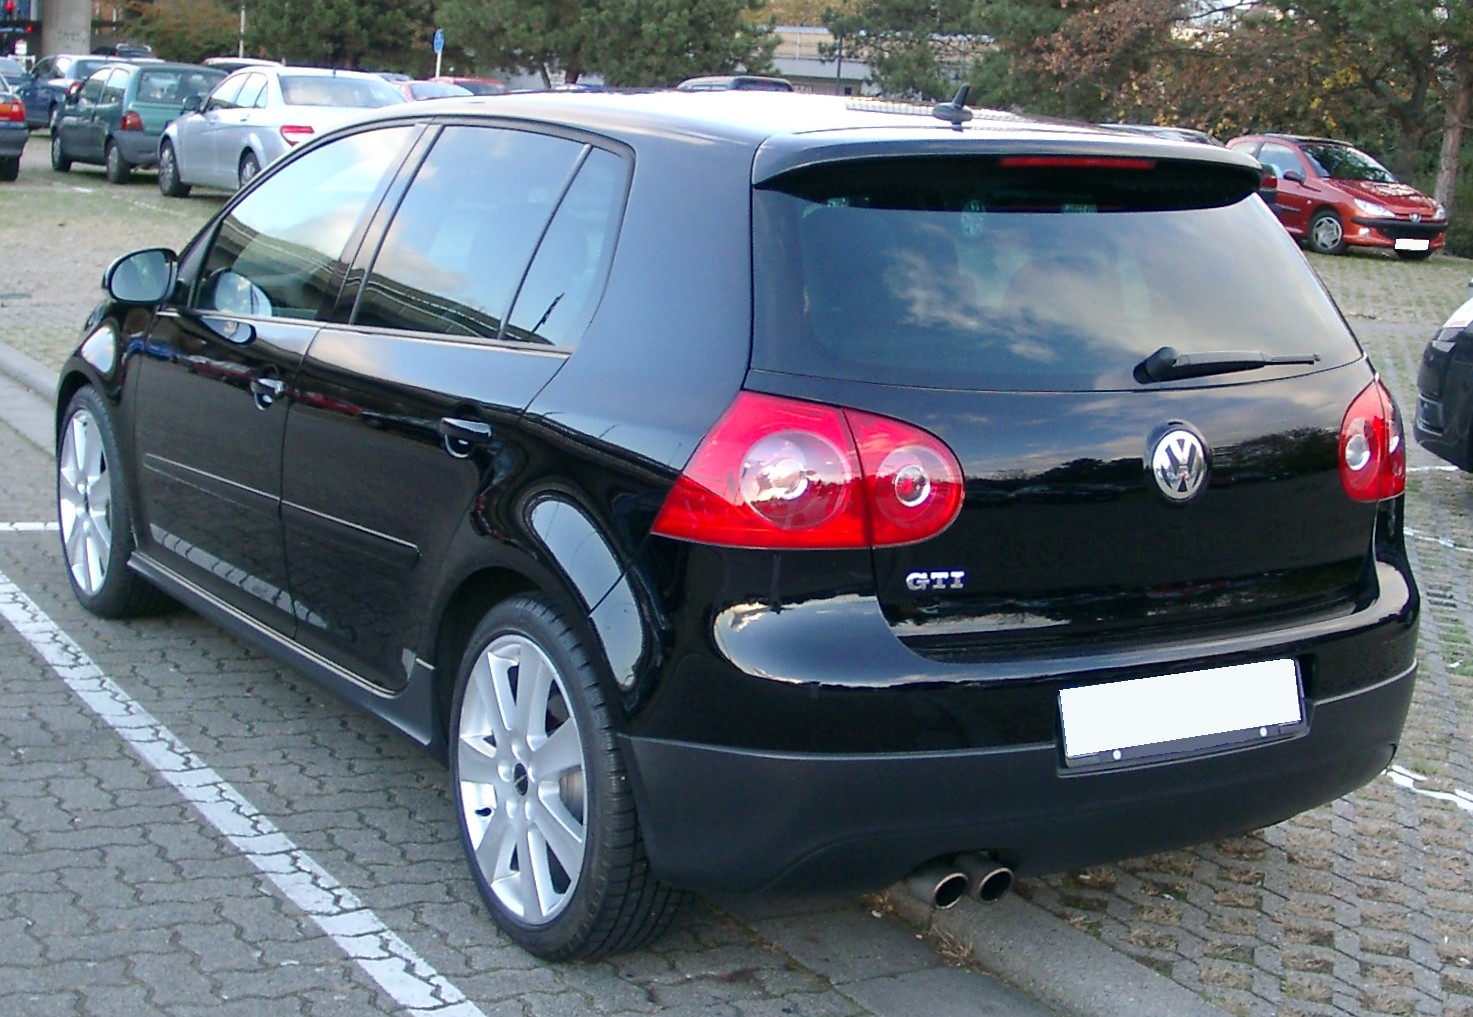 file vw golf v gti rear. Black Bedroom Furniture Sets. Home Design Ideas